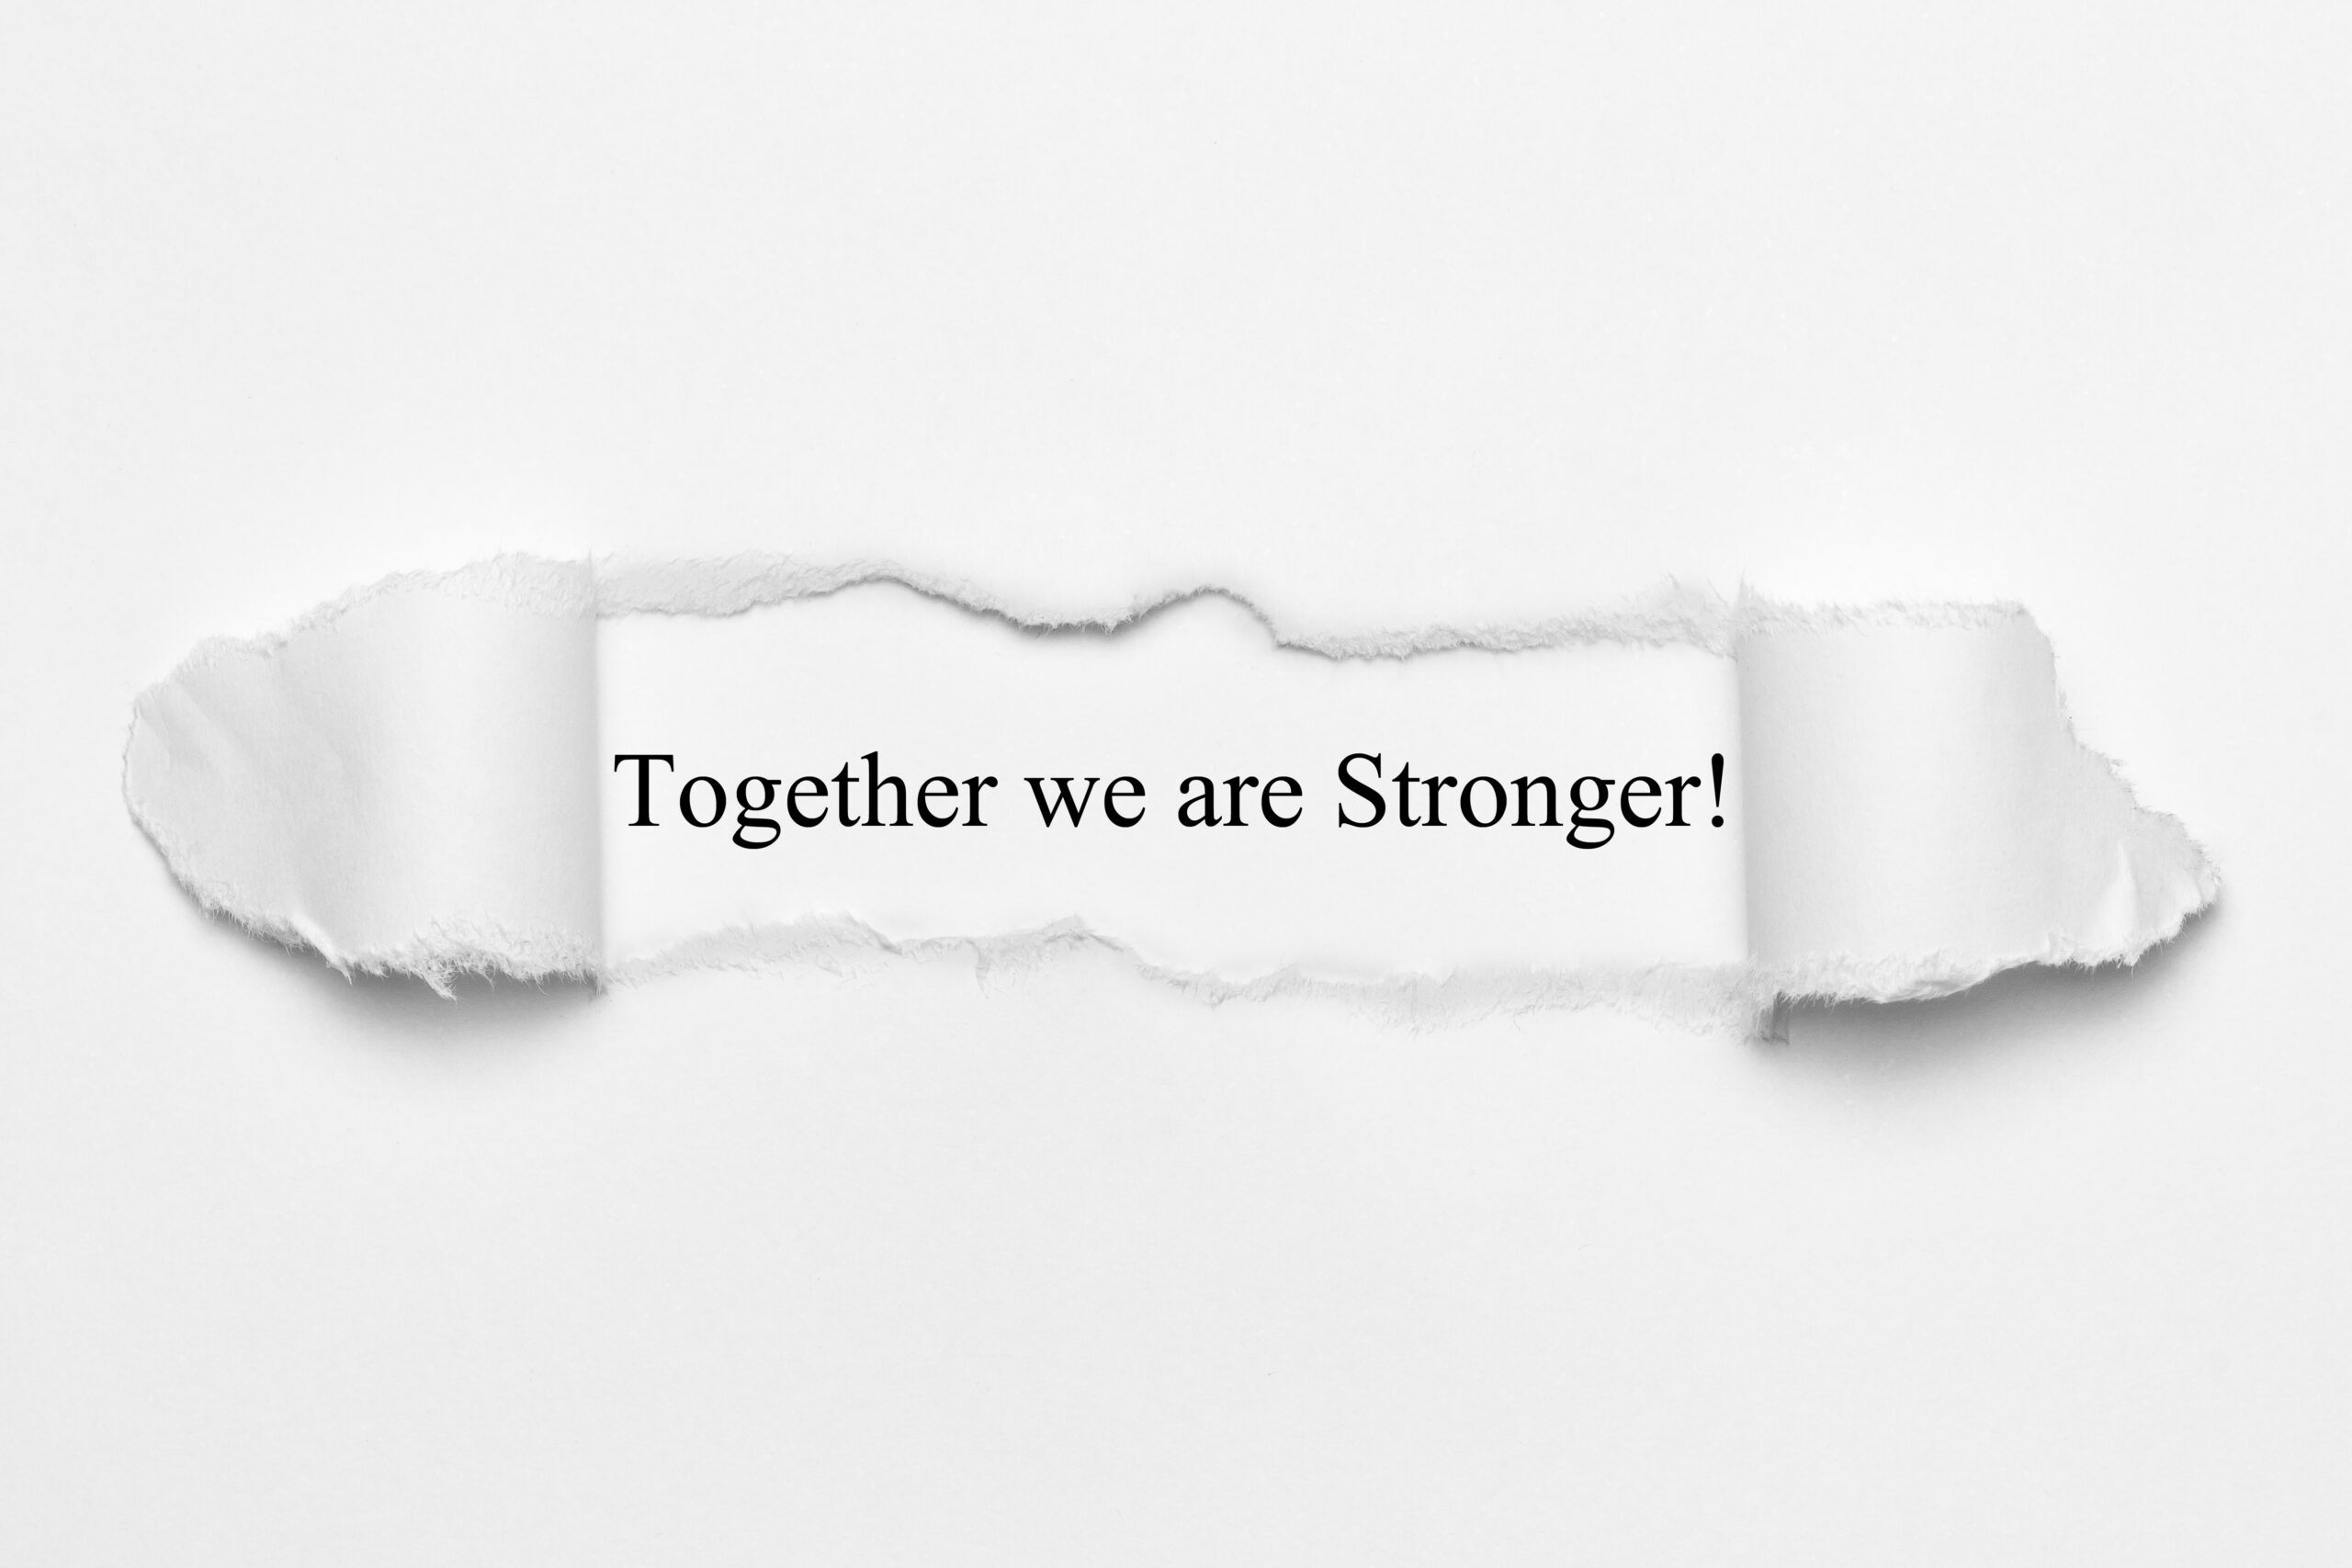 White paper, torn open - together we are stronger